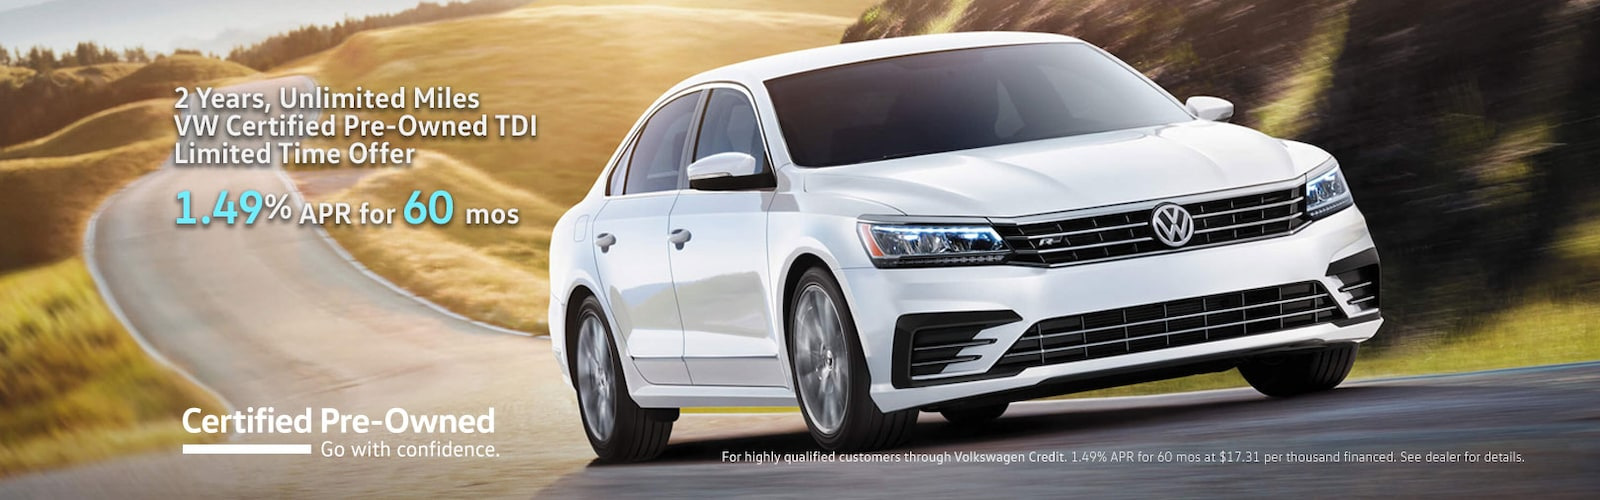 chicago glenview pre near clp il for owned passat cpo jennings sale certified a volkswagen vw